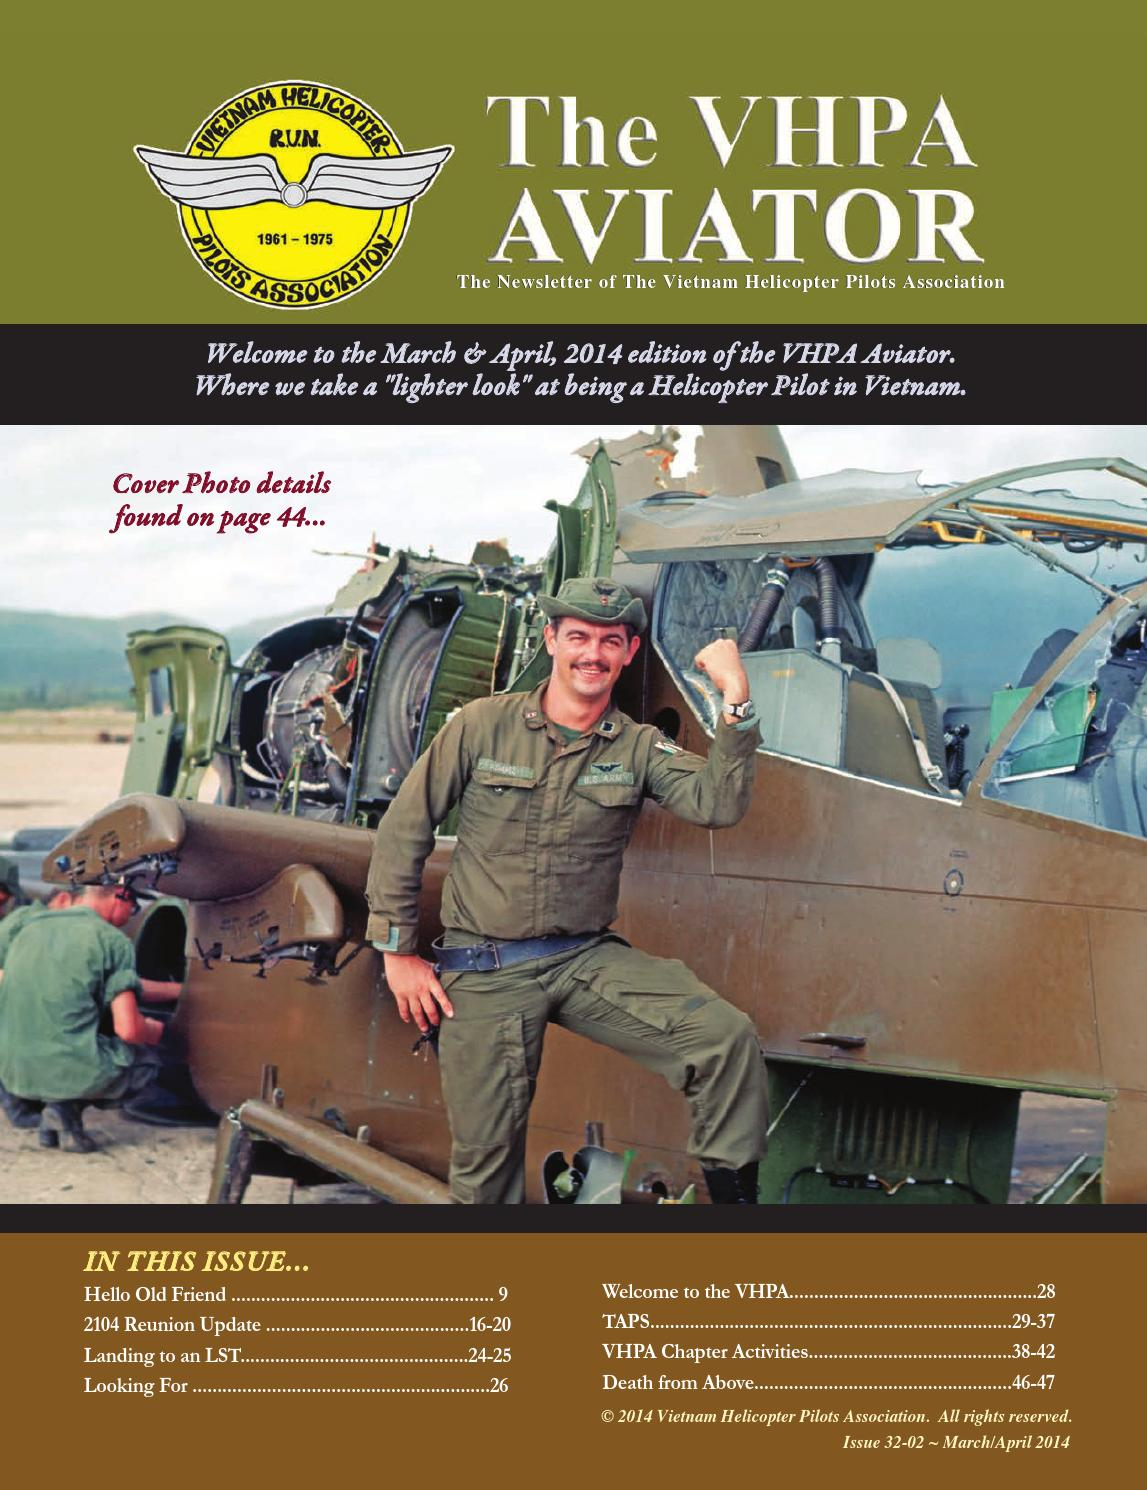 174th ahc 2015 reunion - The Vhpa Aviator March April 2014